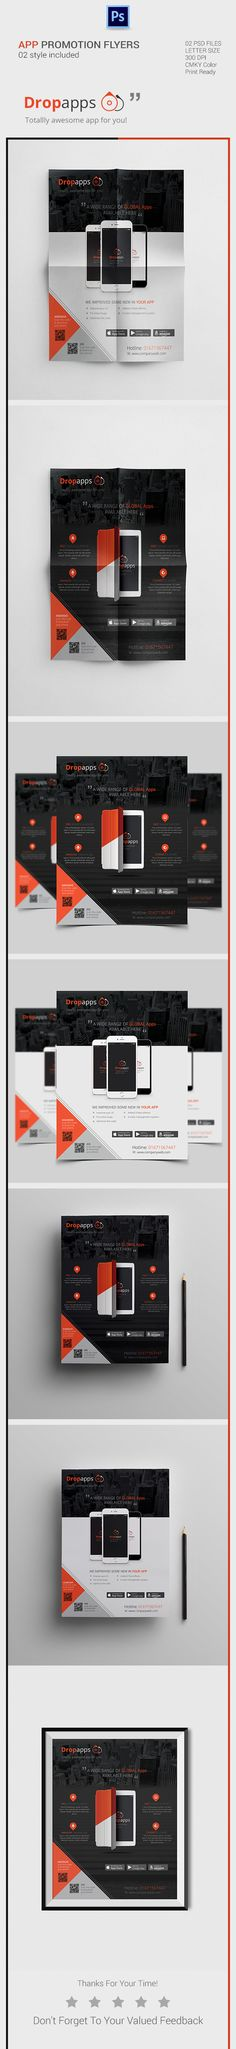 Mobile App Promotional Flyer on Behance